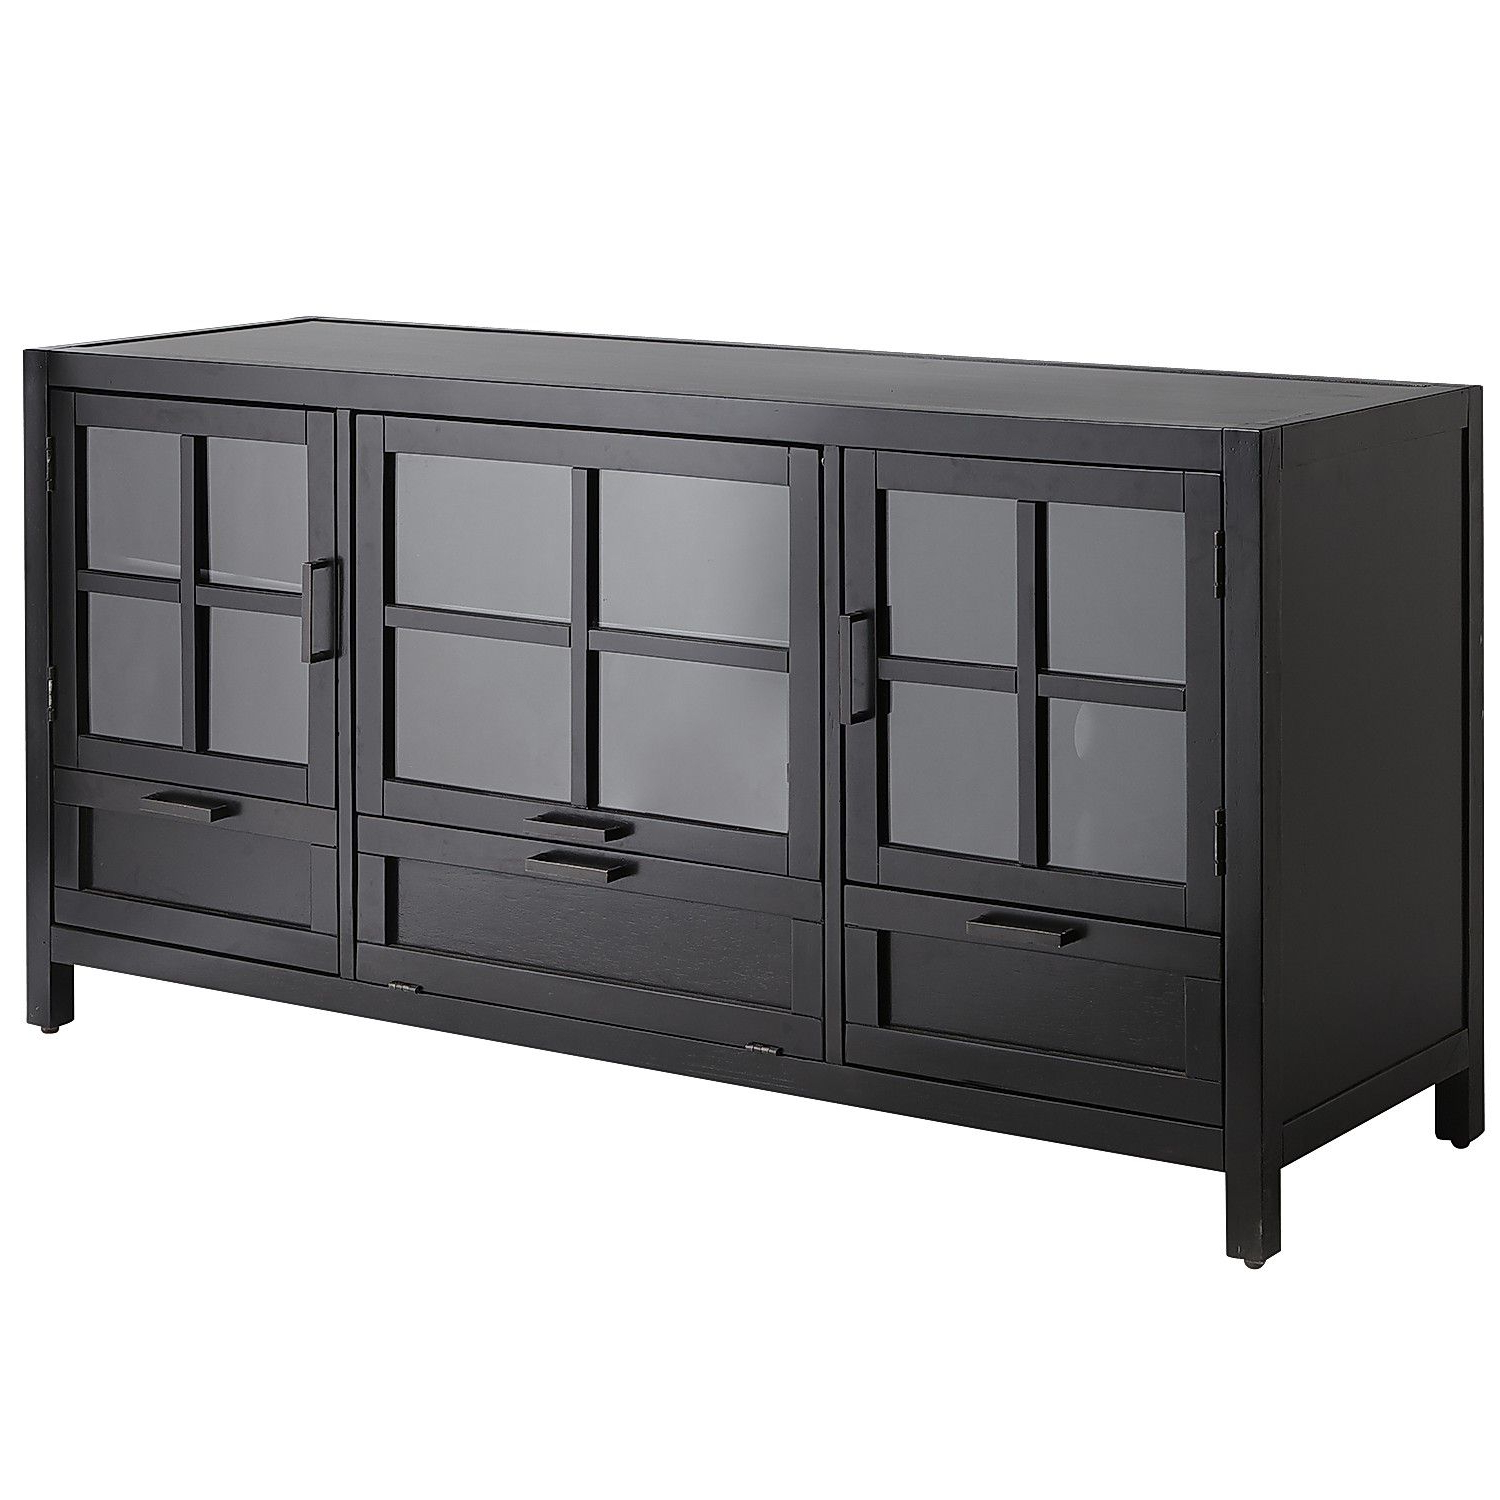 *media Storage Intended For Fashionable Cast Iron Tv Stands (View 1 of 20)